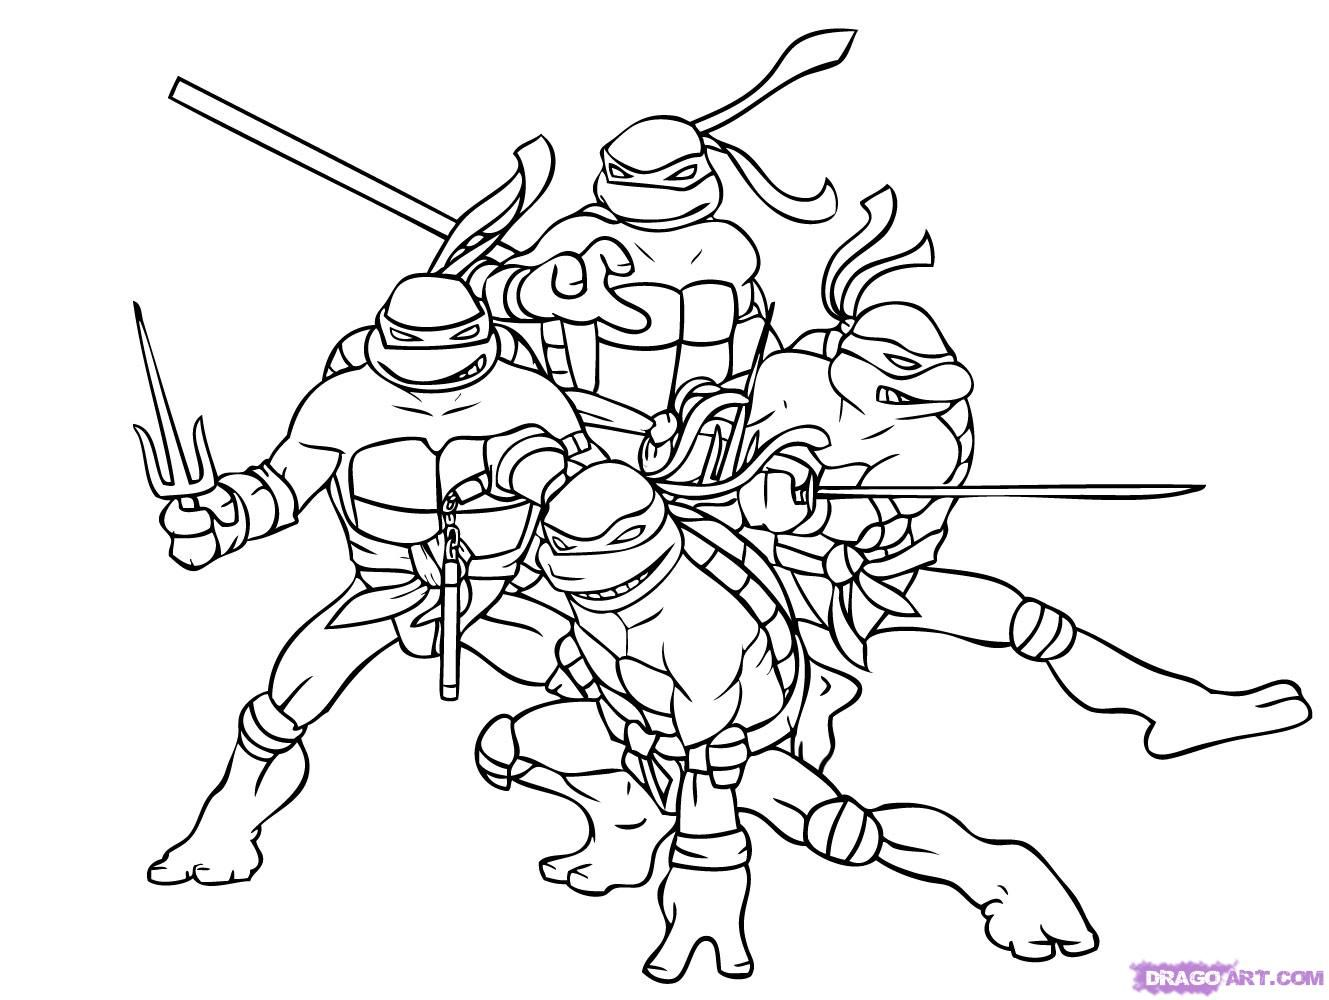 How to Draw Ninja Turtles, Step by Step, Characters, Pop Culture ...